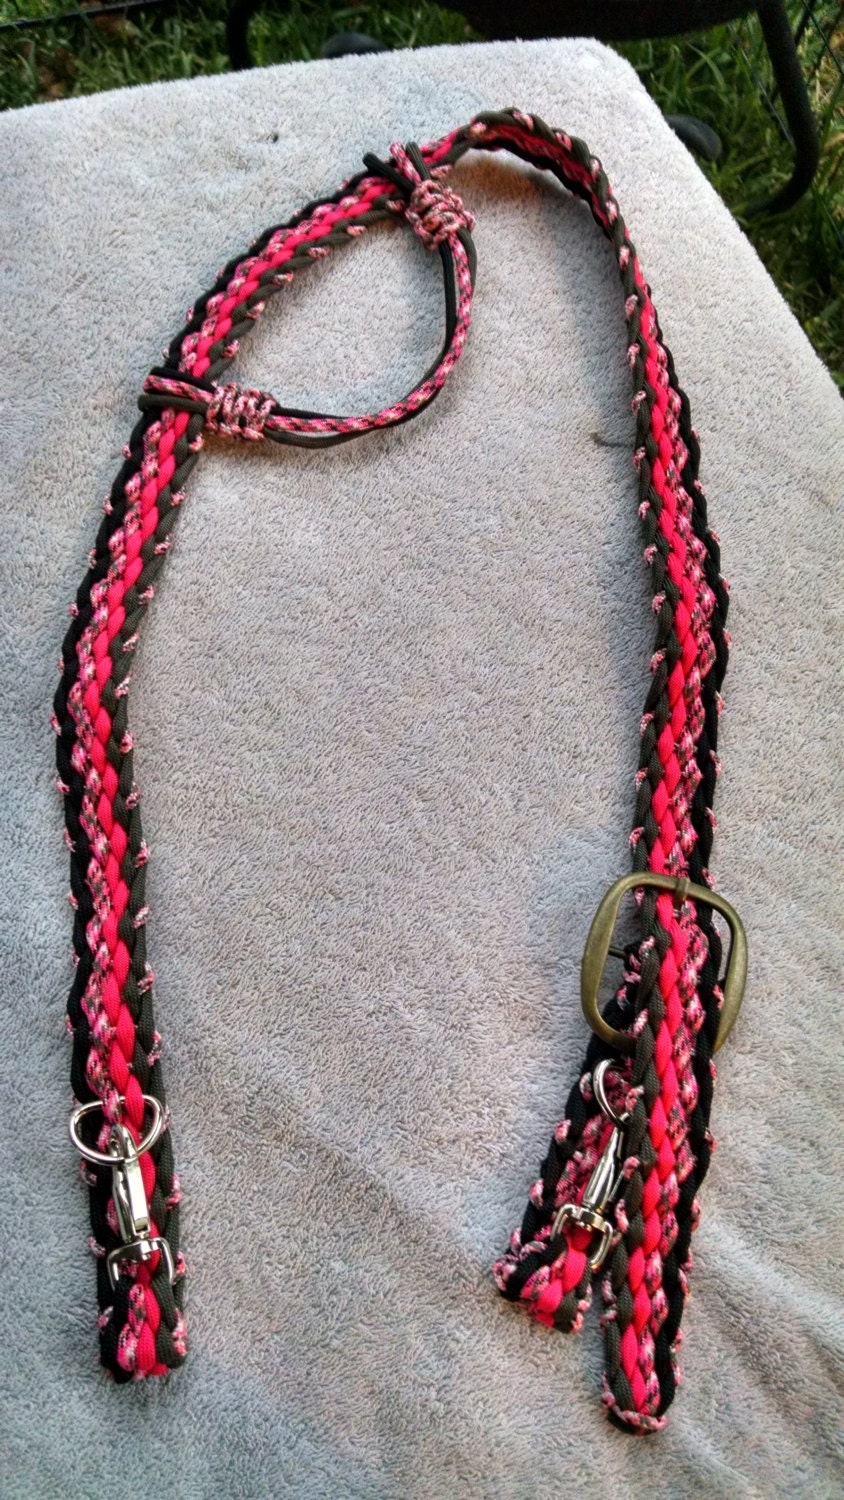 Horse tack paracord bridle standard horse size adjustable for Paracord horse bridle